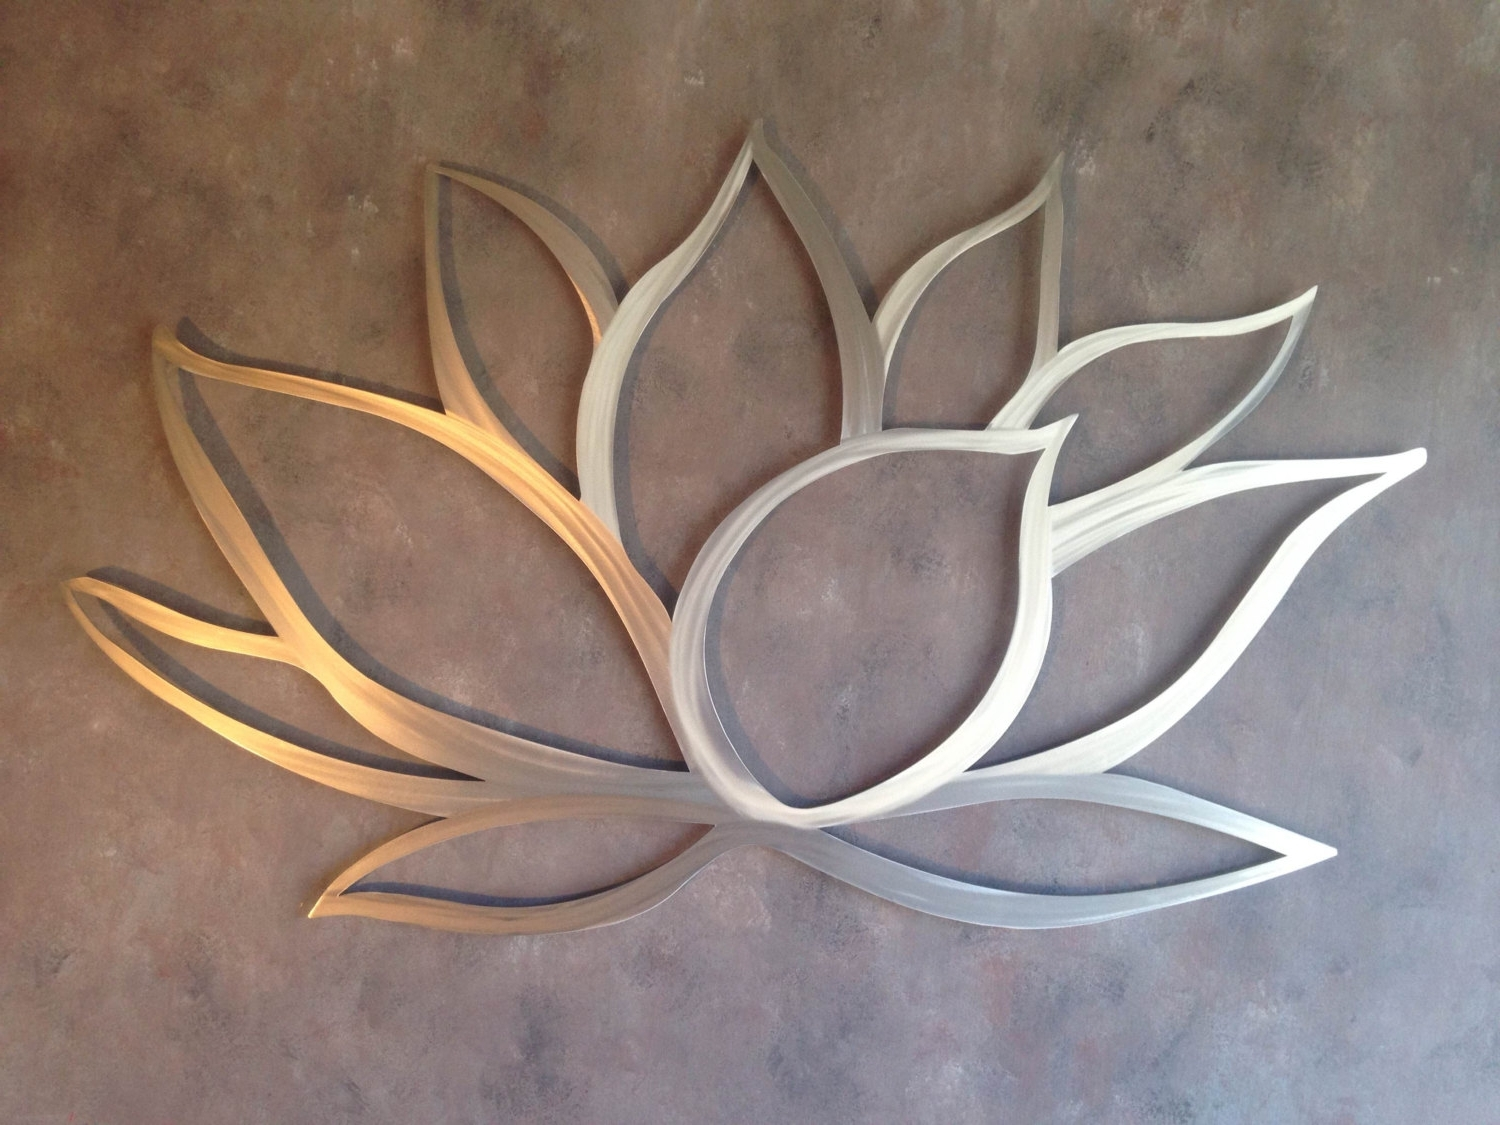 Most Recently Released Metal Wall Art For Bathroom Within Bathroom: Metal Wall Art For Bathroom (View 11 of 15)